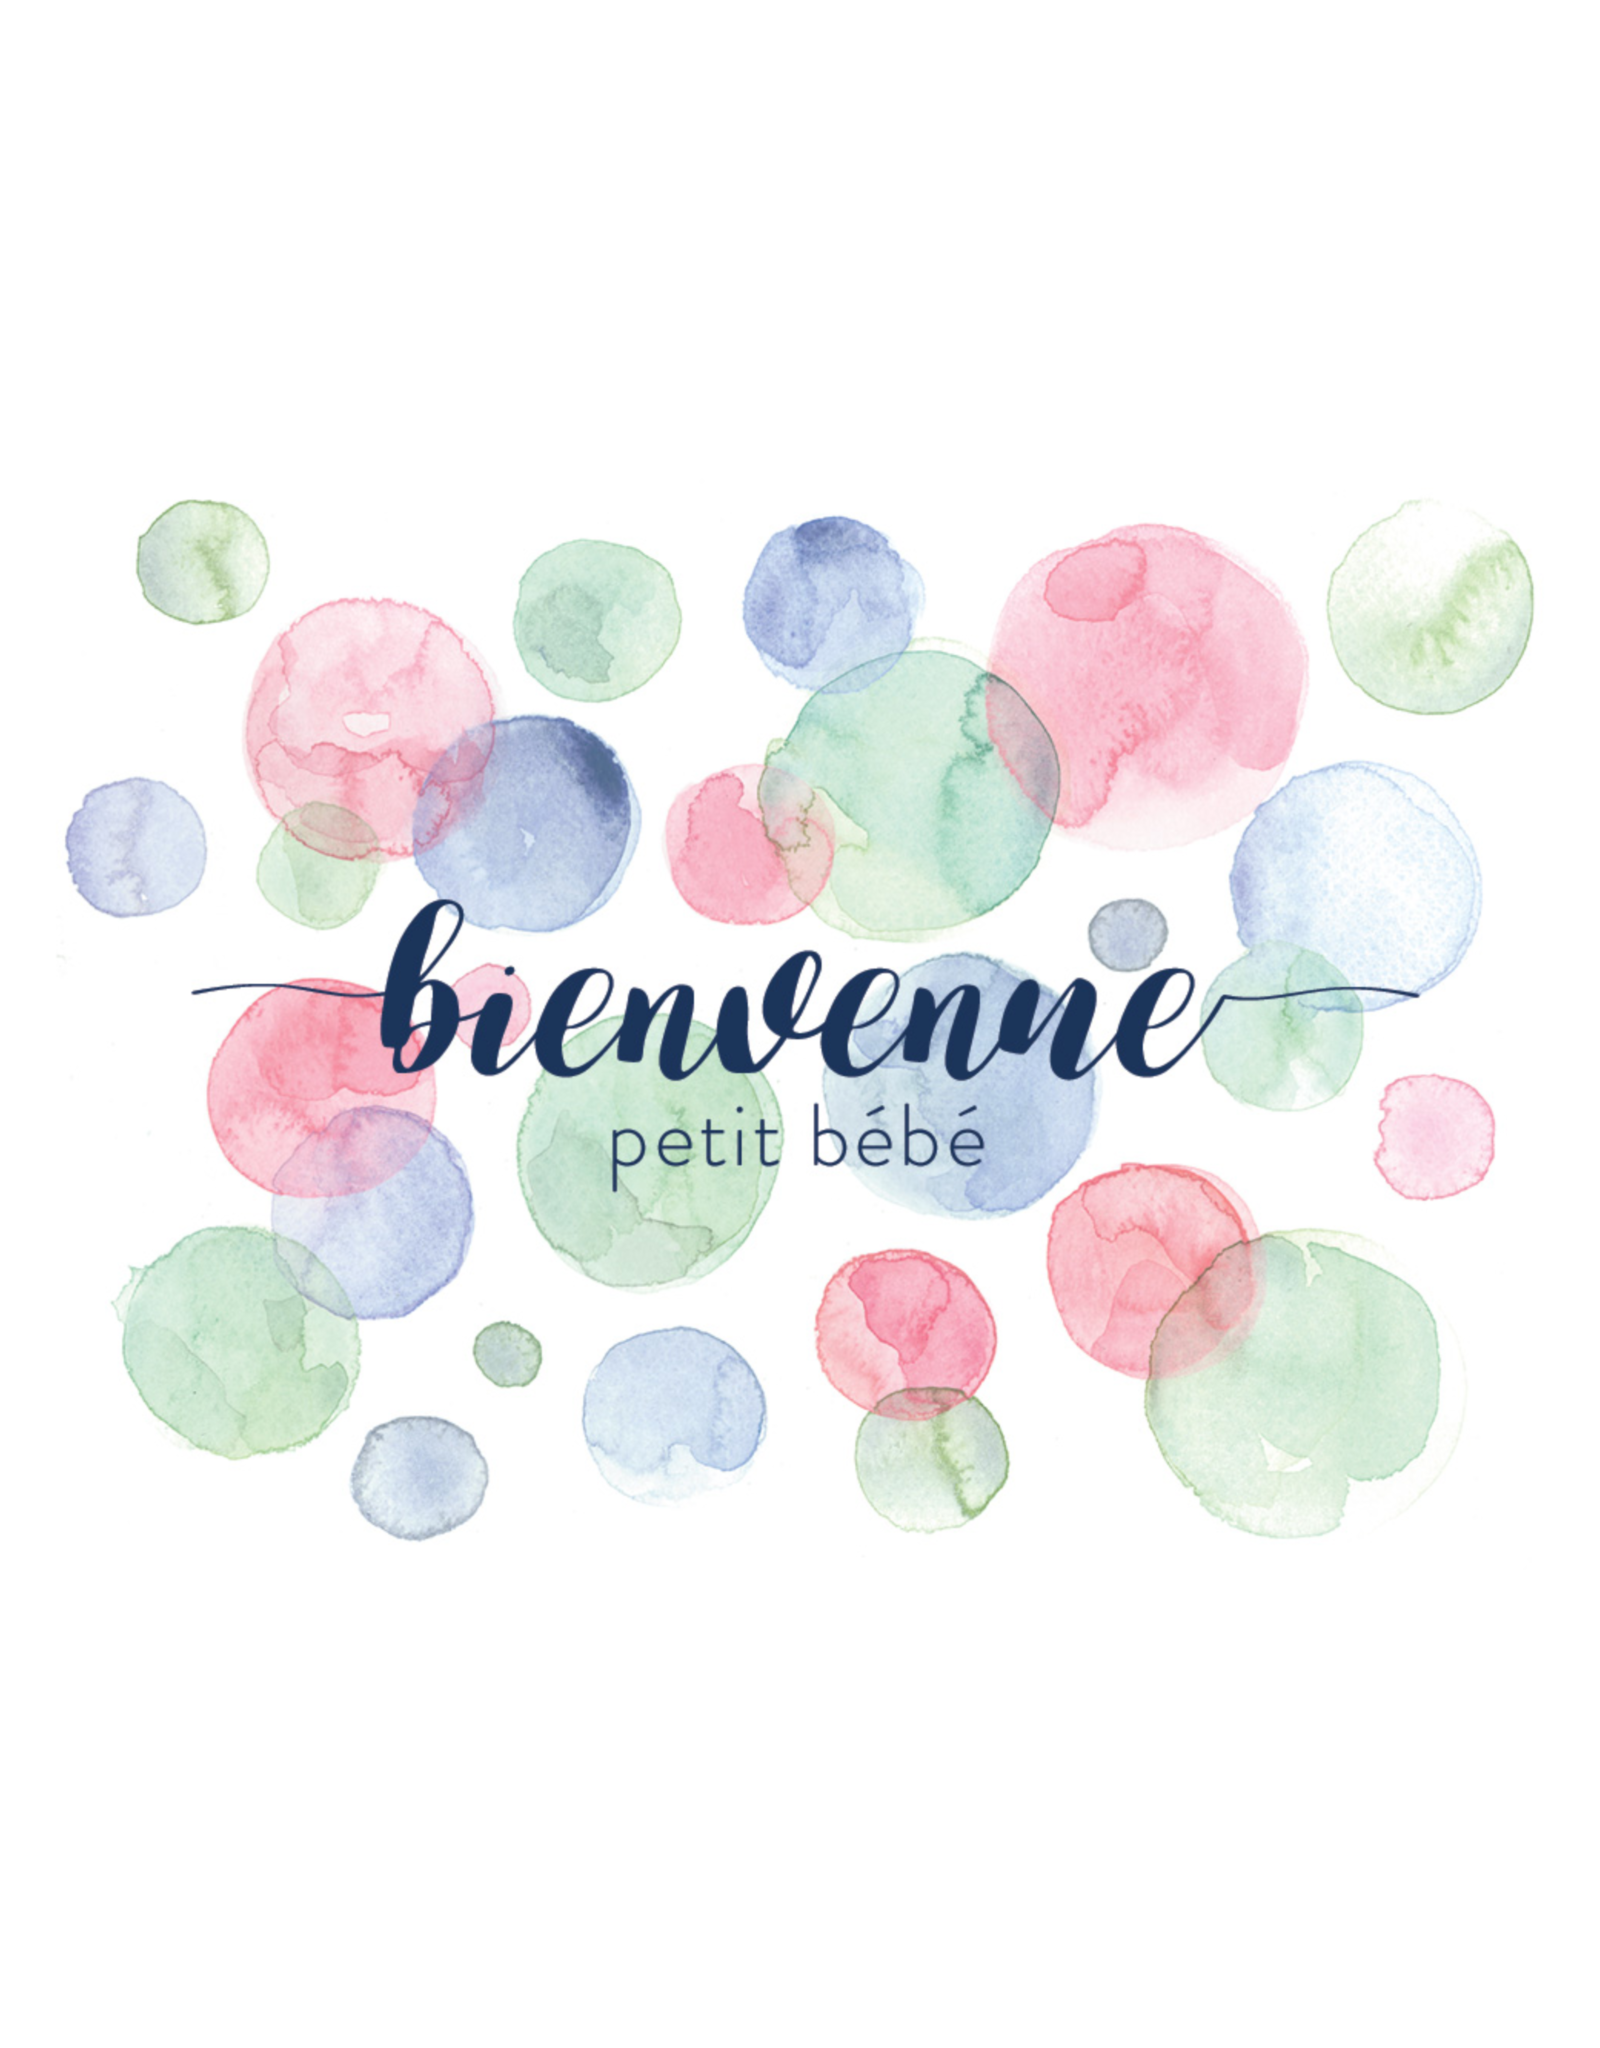 Stéphanie Renière illustration Greeting card - welcome little baby - round watercolor